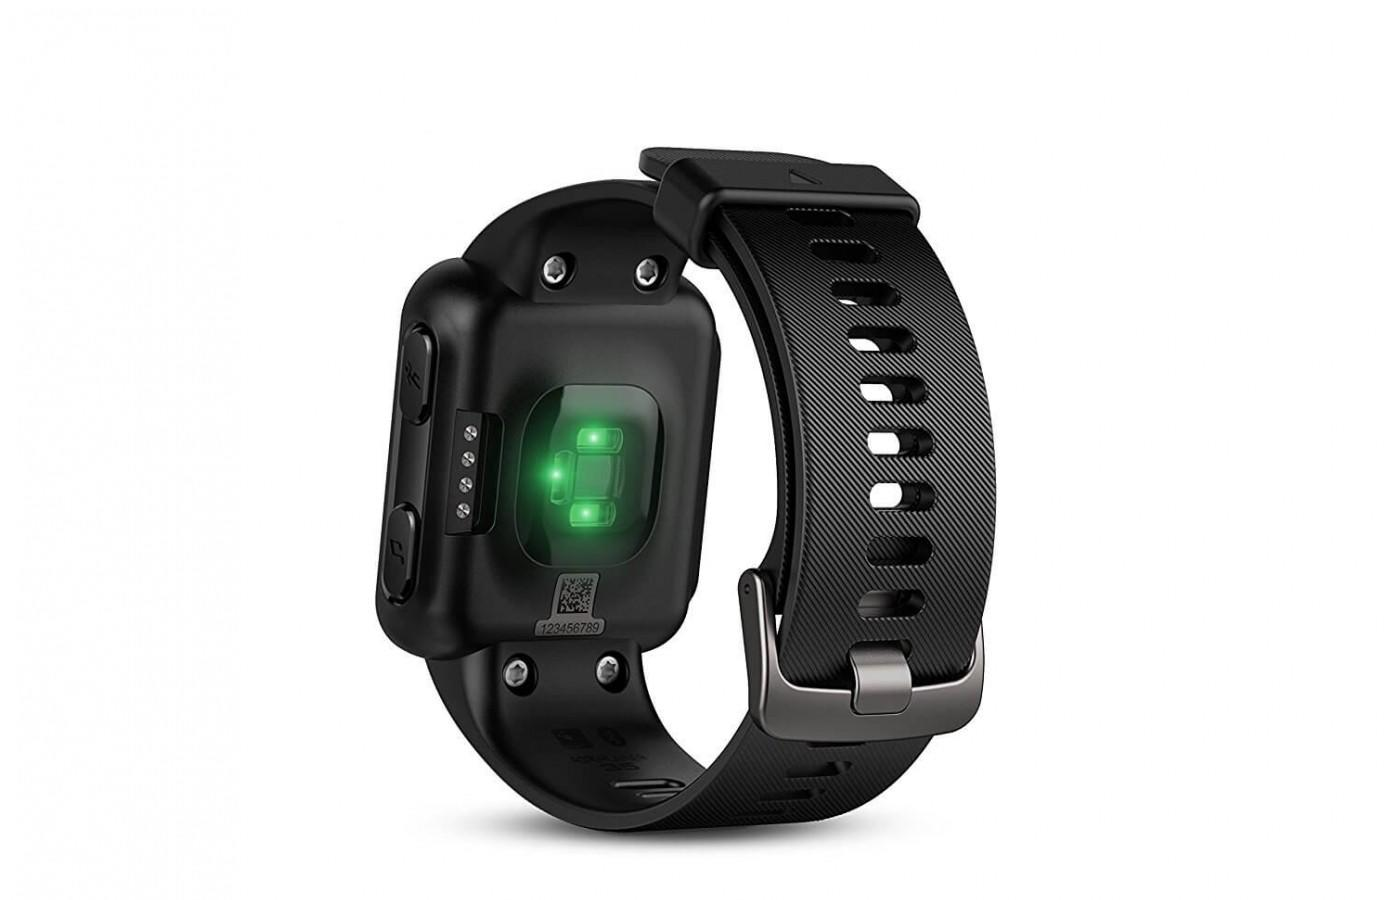 0cdfdbd9693756 ... The Garmin Forerunner 35 has a heart rate monitor in its wrist